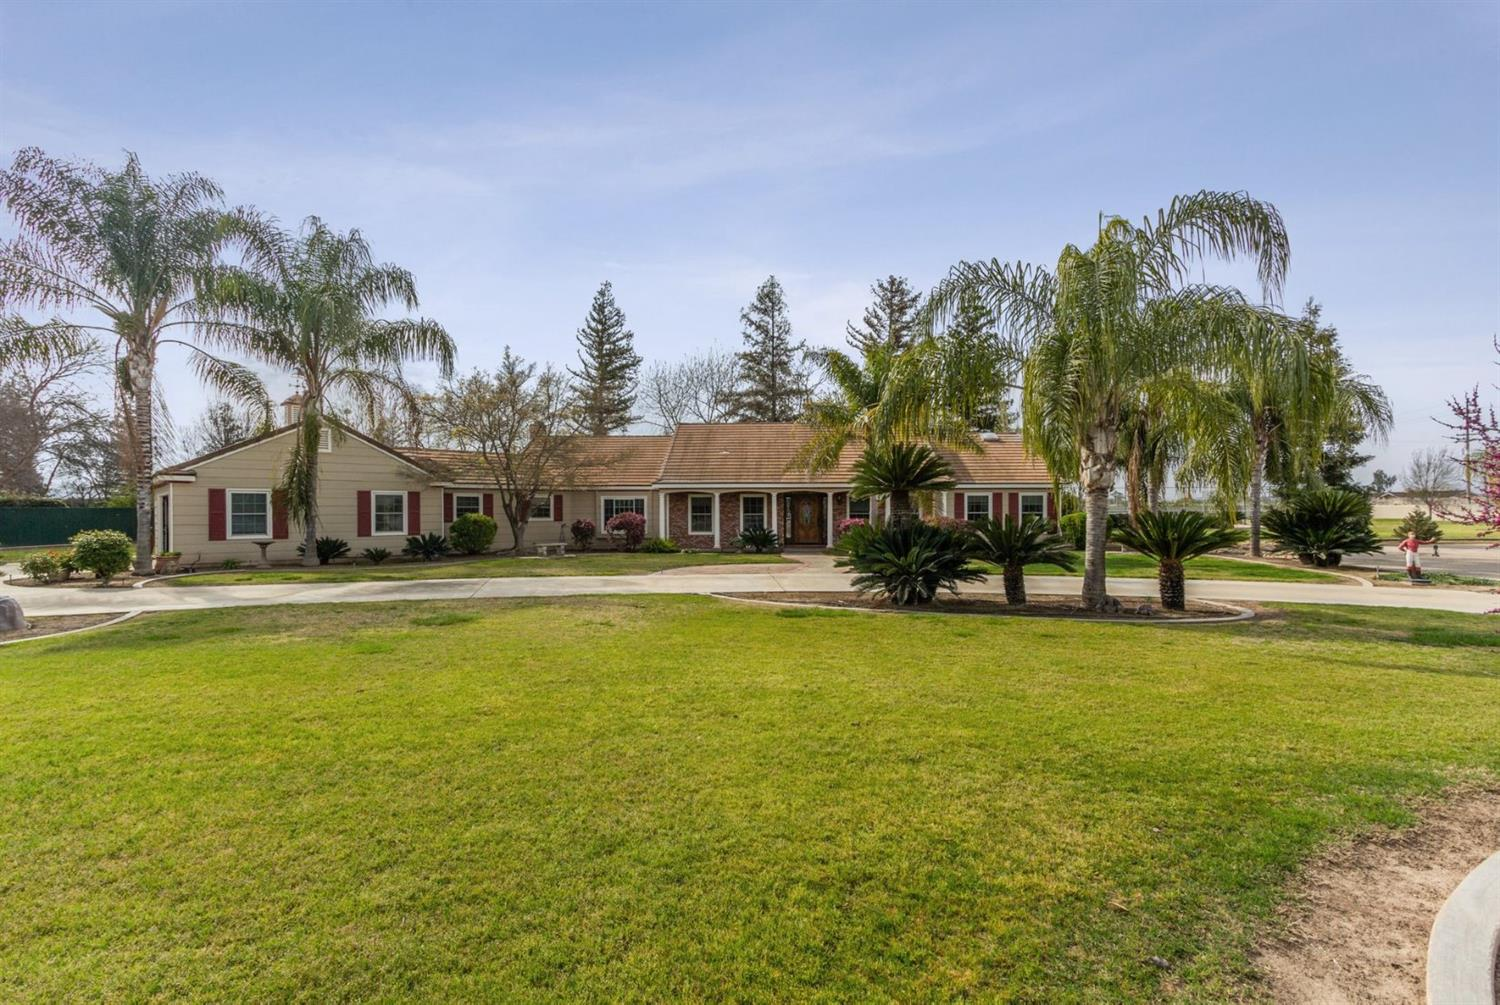 Live and Play in your very own Country Park, just minutes from the city of Dinuba. Great home for the active family and an amazing set up for entertaining!  2.78 Acres of gorgeous matured landscaping with a 2600 sq ft main house, 1200 sq ft guest house, and an ultimate back yard with a tile floor, covered patio, outdoor Kitchen/Brick BBQ, full size tennis court, and over an acre of lawn.  This huge back yard is perfect for family fun, holidays, or little league practice.  Don't let the evening slow you down, commercial lighting will keep it going on the tennis court or on the grass field.  Main home is 2600 square ft. 3 berm, 2.5 ba, office , formal living room with coved ceiling and wood beam and fireplace, formal dining rm, & family rm., Marble tiled floors, granite counter tops  1200 sq. ft. guest or in-law house with entry doors, second home includes 1 bedroom, living room, office, kitchen & full bath, laundry hook up and RV Parking garage.